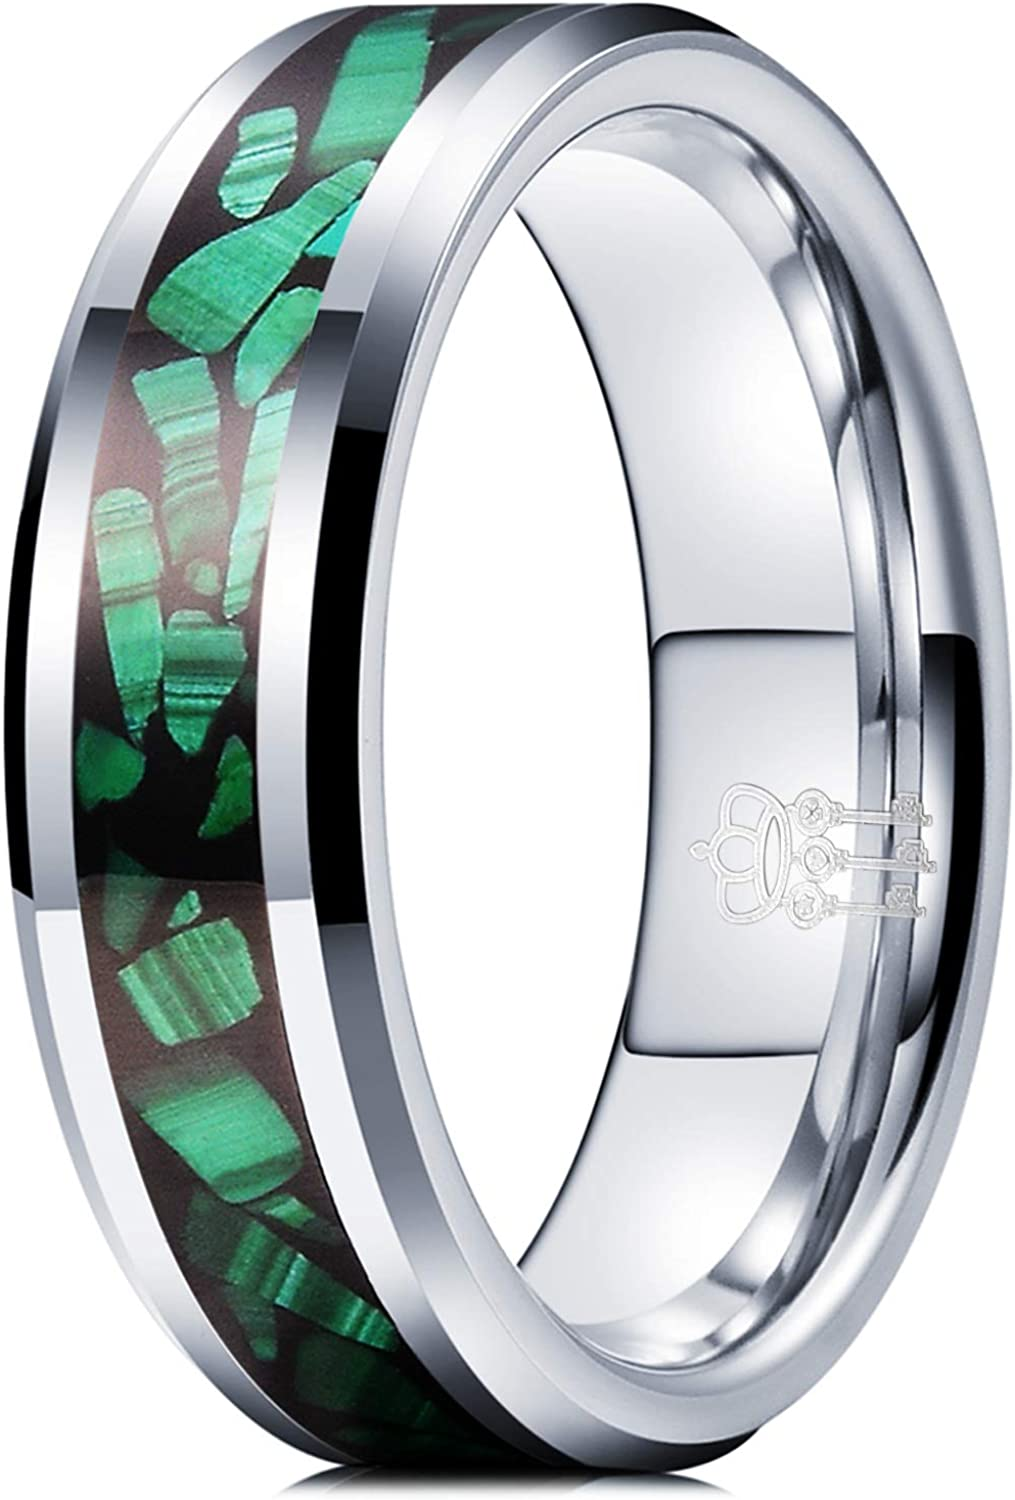 THREE KEYS JEWELRY 6mm 8mm Silver Tungsten Rings Green Malachite Precious Inlay Bands for Women Men